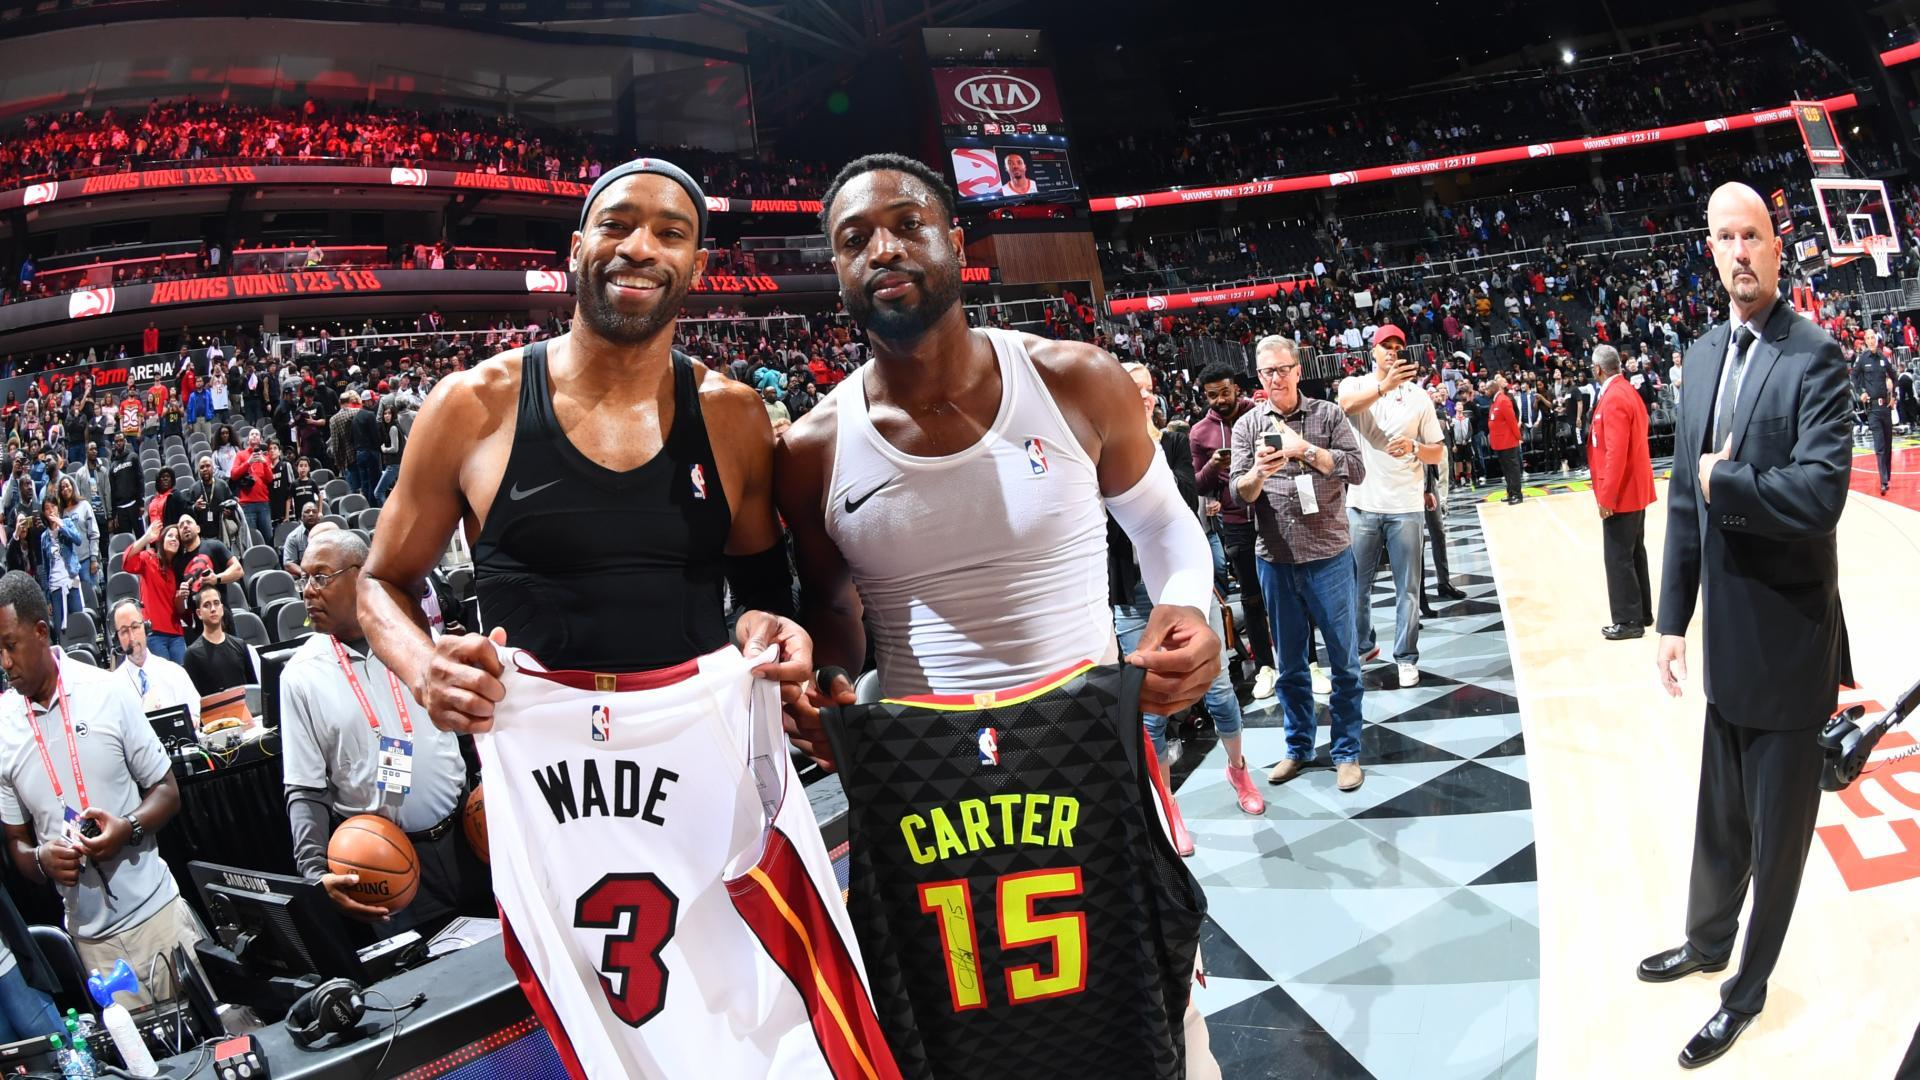 Behind the scenes of Dwyane Wade's final National Basketball Association  game